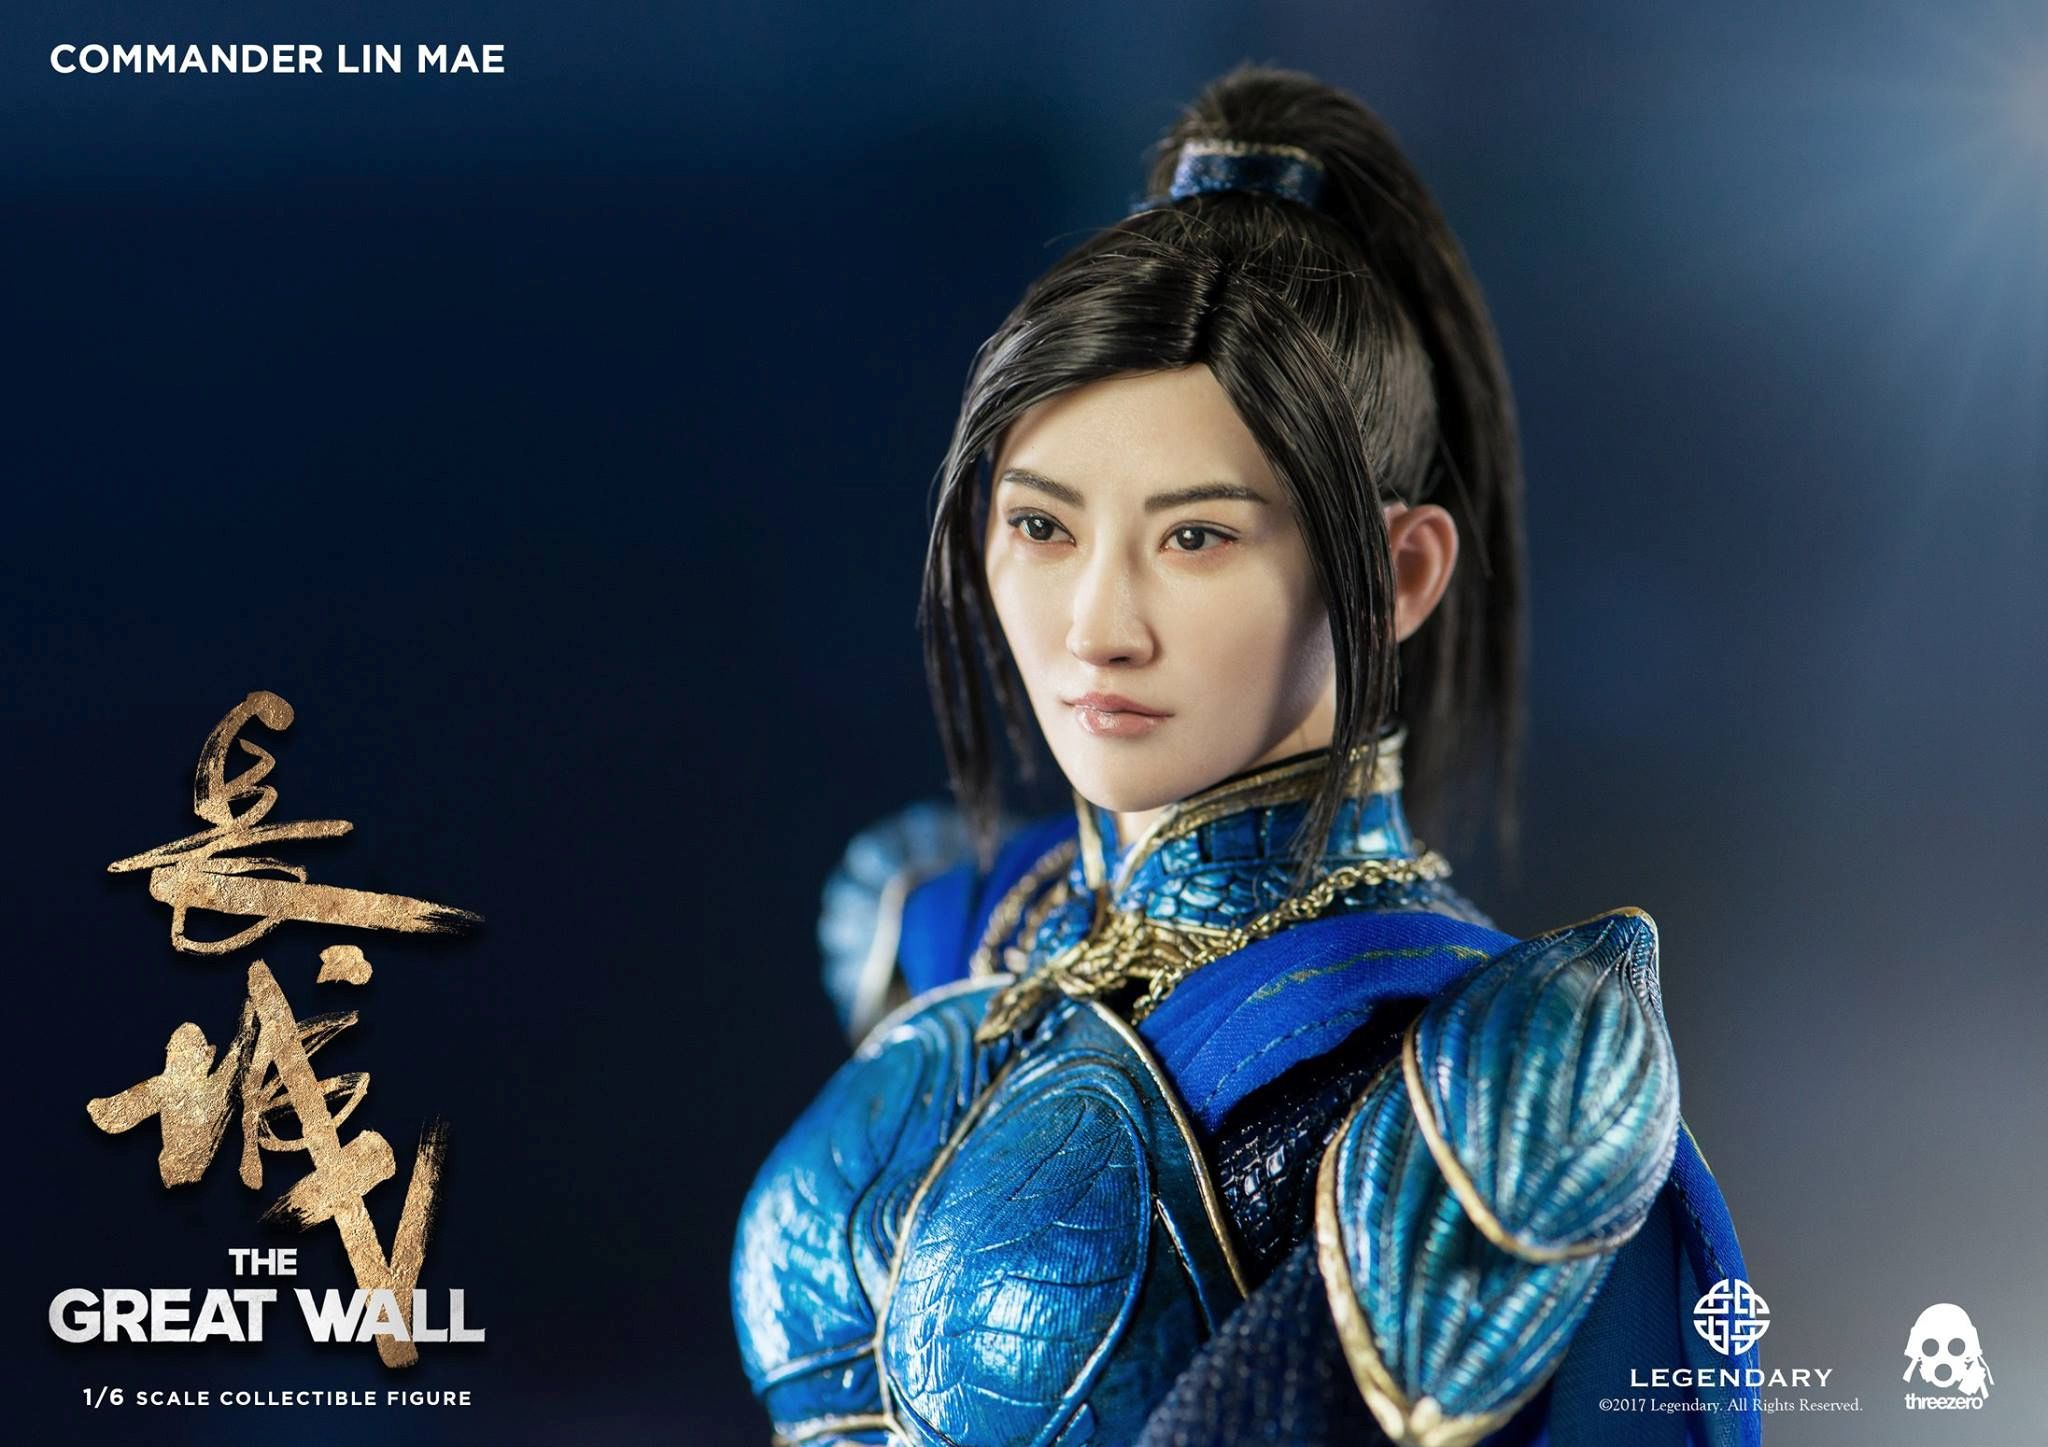 Lin-Mae-The-Great-Wall-Collectible-Action-Figure-11